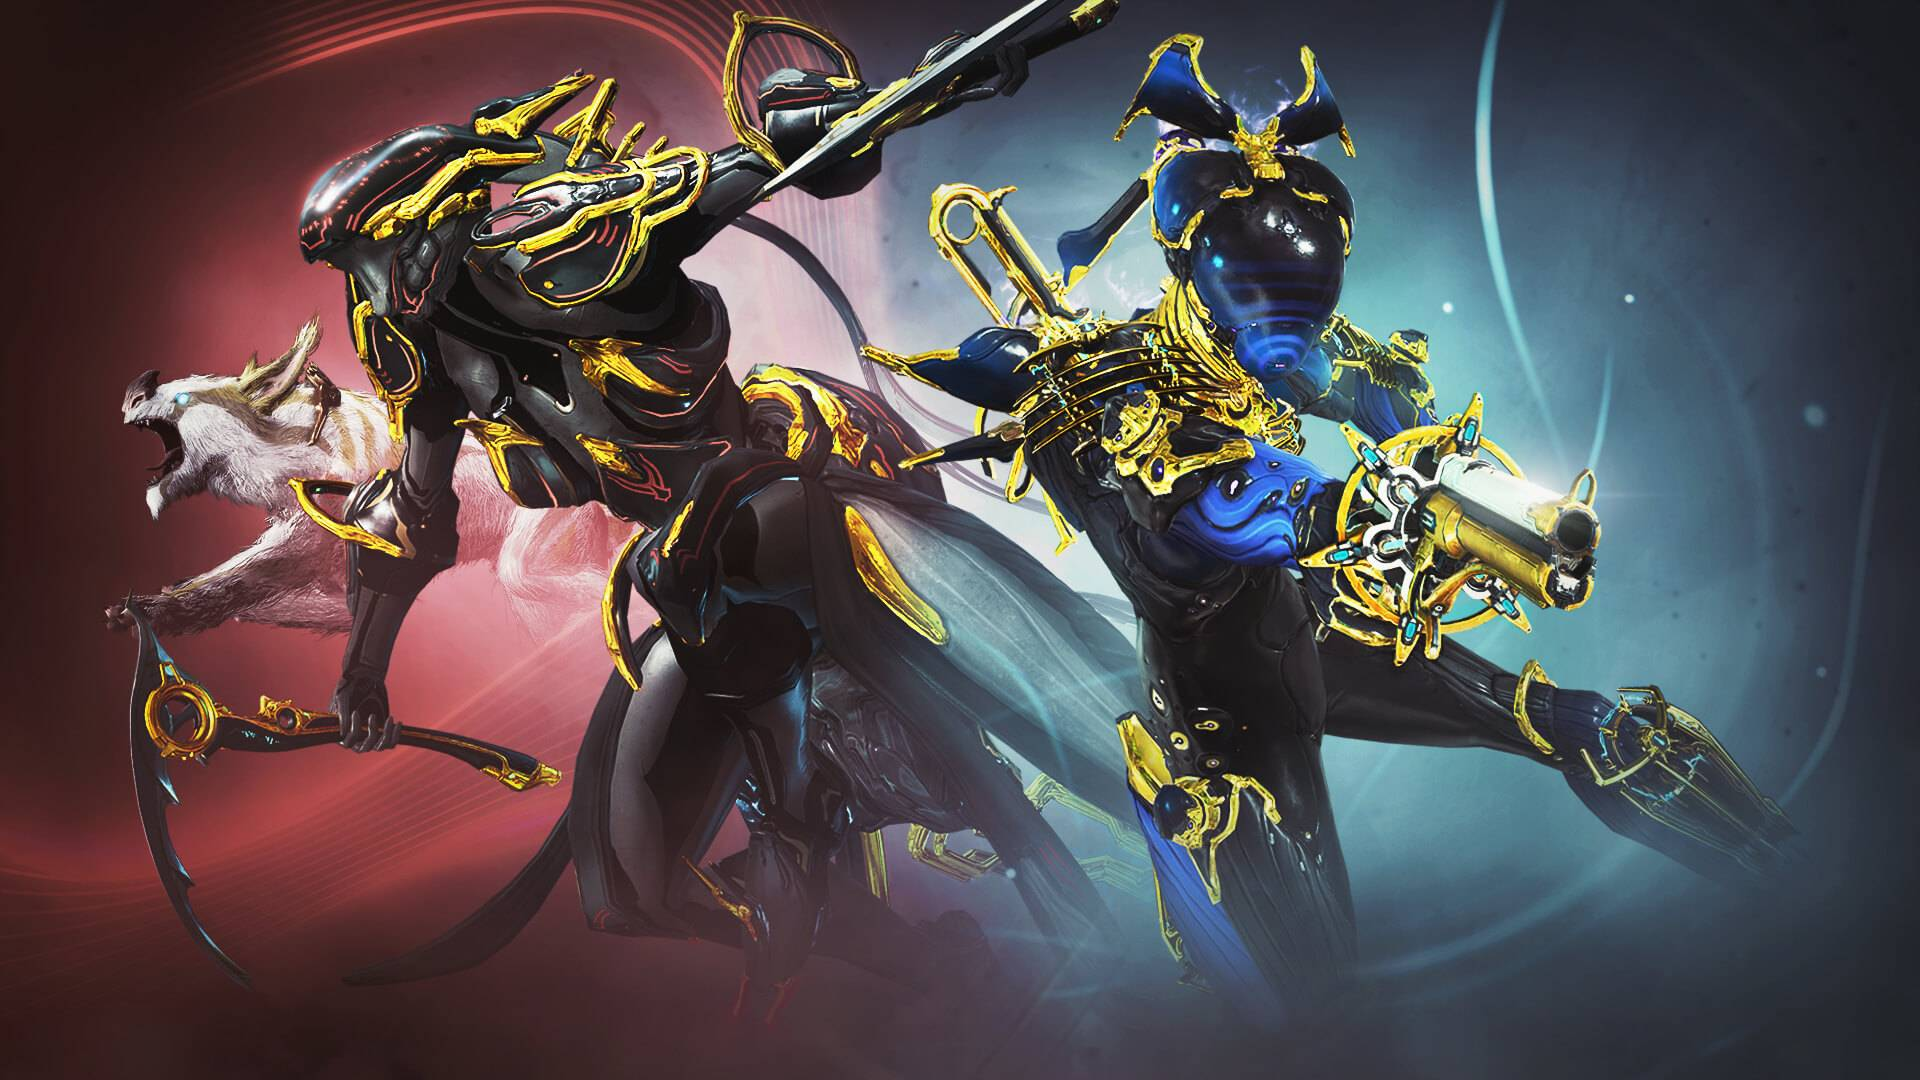 Warframe Trinity And Nova Prime Vault Available Now #warframe #warframe limbo #nova prime #warframe nova #the war within #maybe a spoiler #maybe not #i want one of those orokin creature #orokin #weekly warframe. warframe trinity and nova prime vault